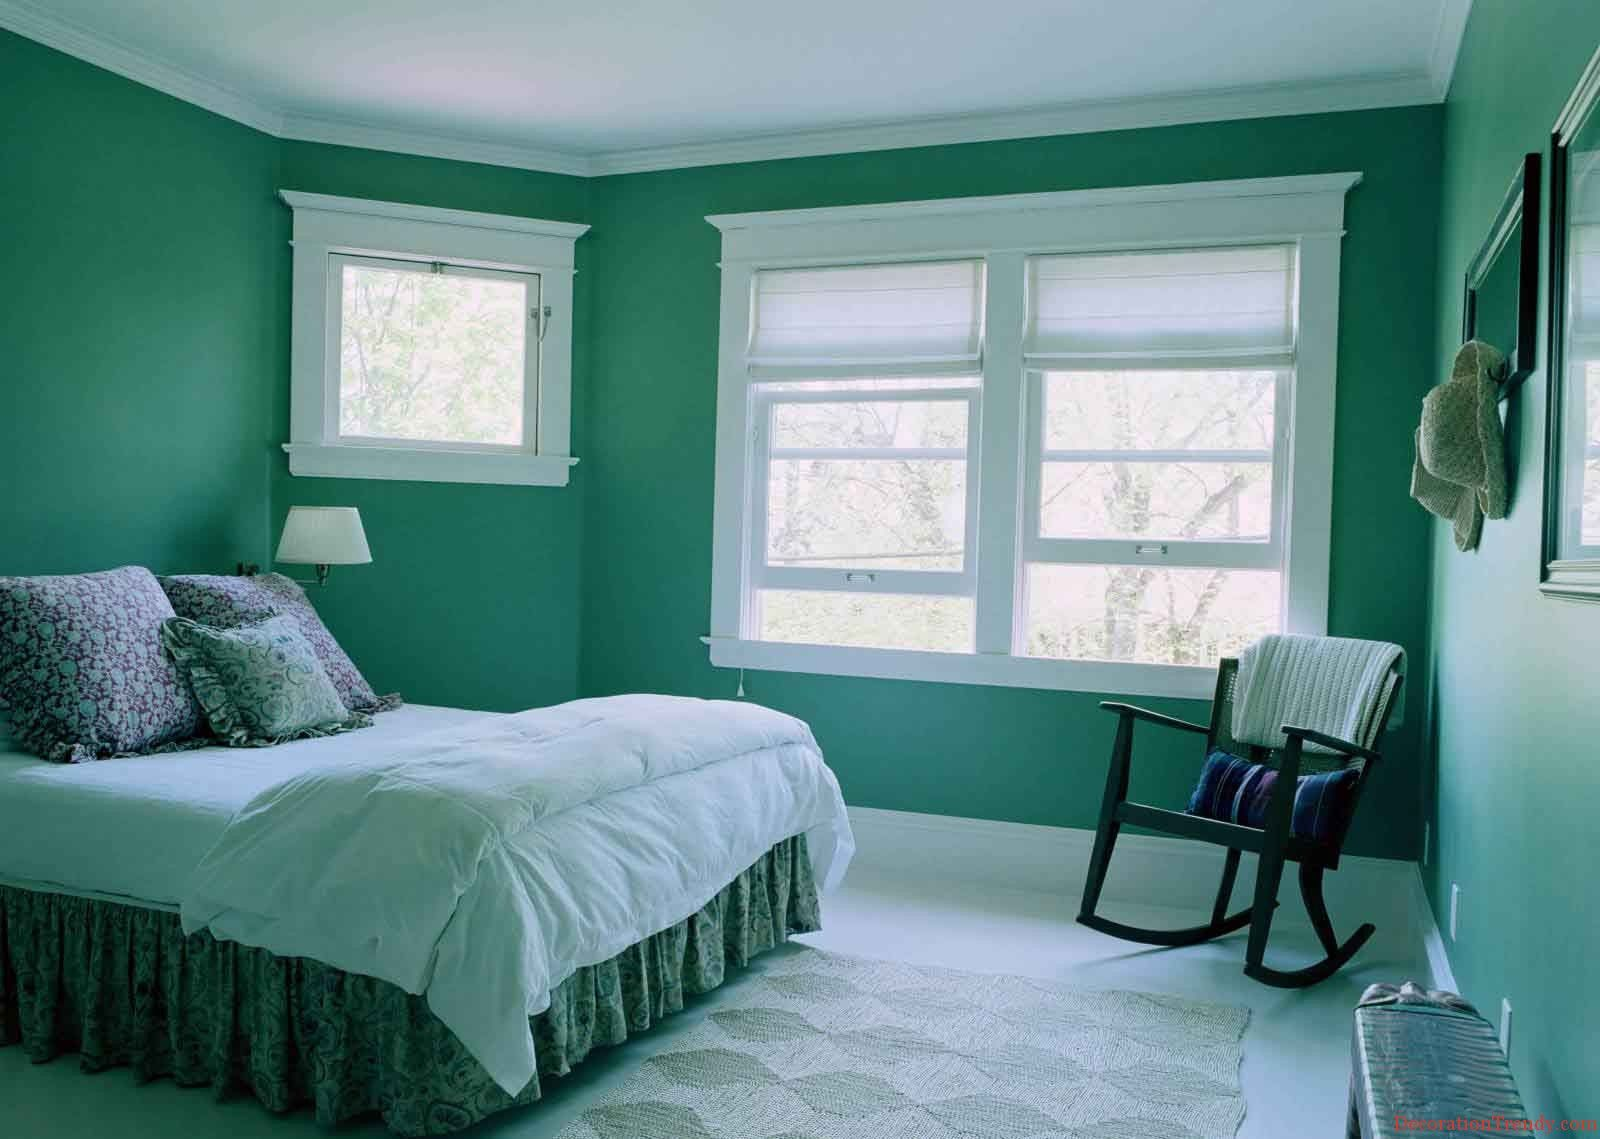 Wall color combination design ideas and photos get for Wall paint combination ideas